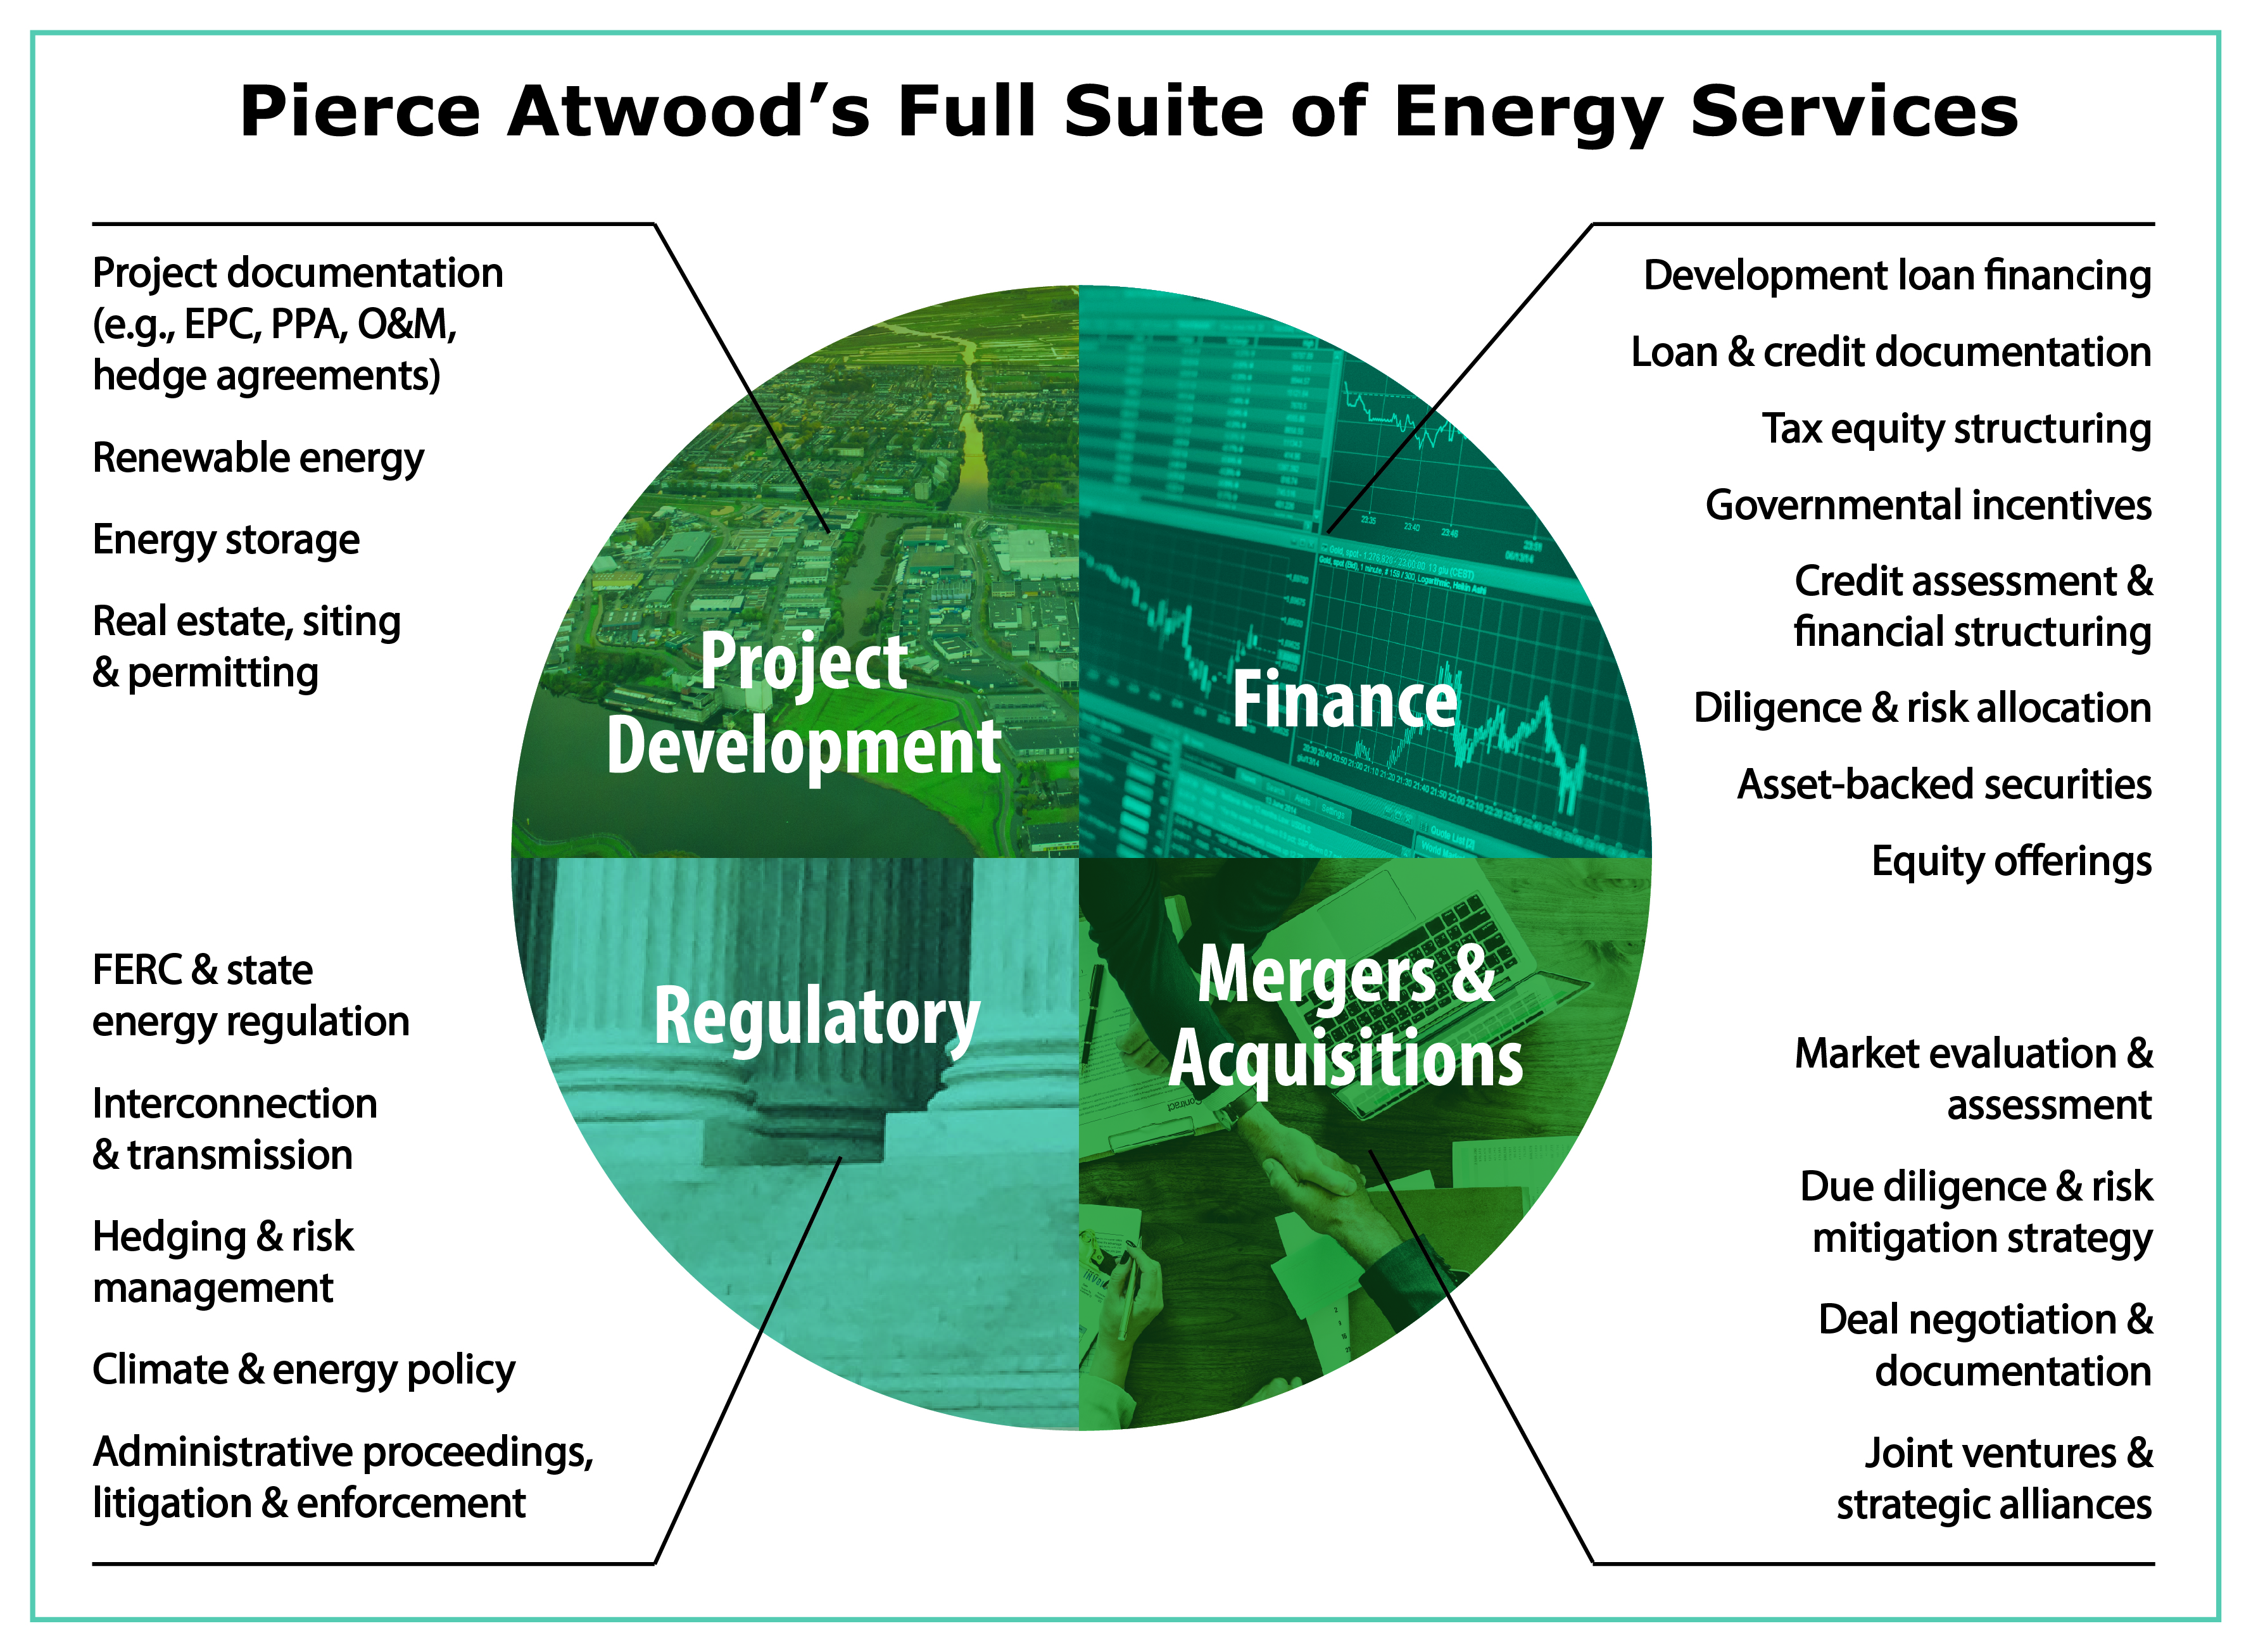 Energy infrastructure suite of energy services